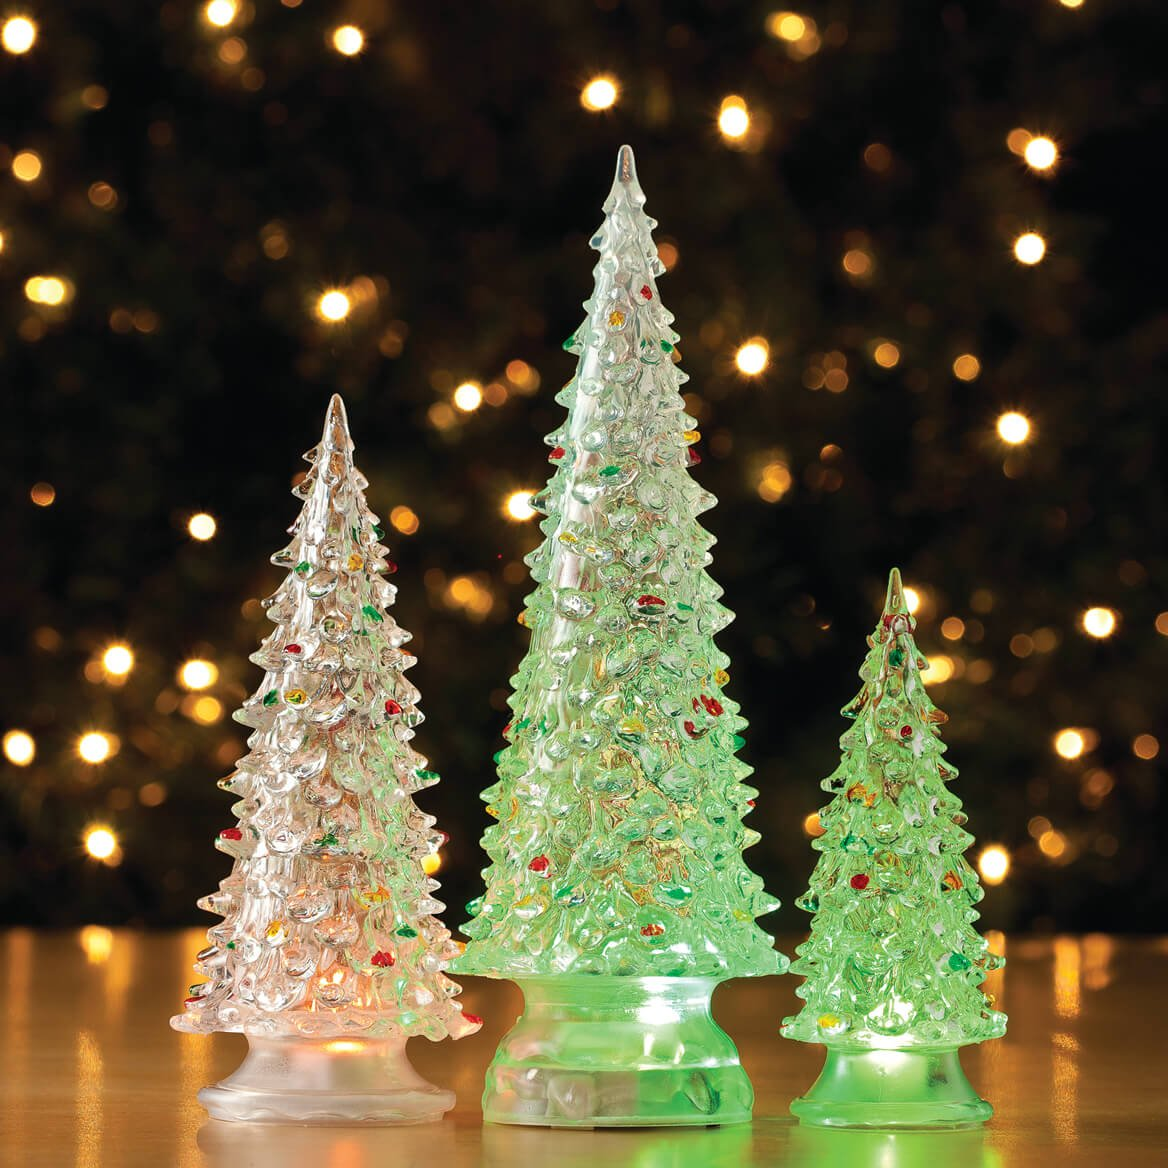 Amazon.com: Color Changing Acrylic Trees, Set of 3: Home & Kitchen